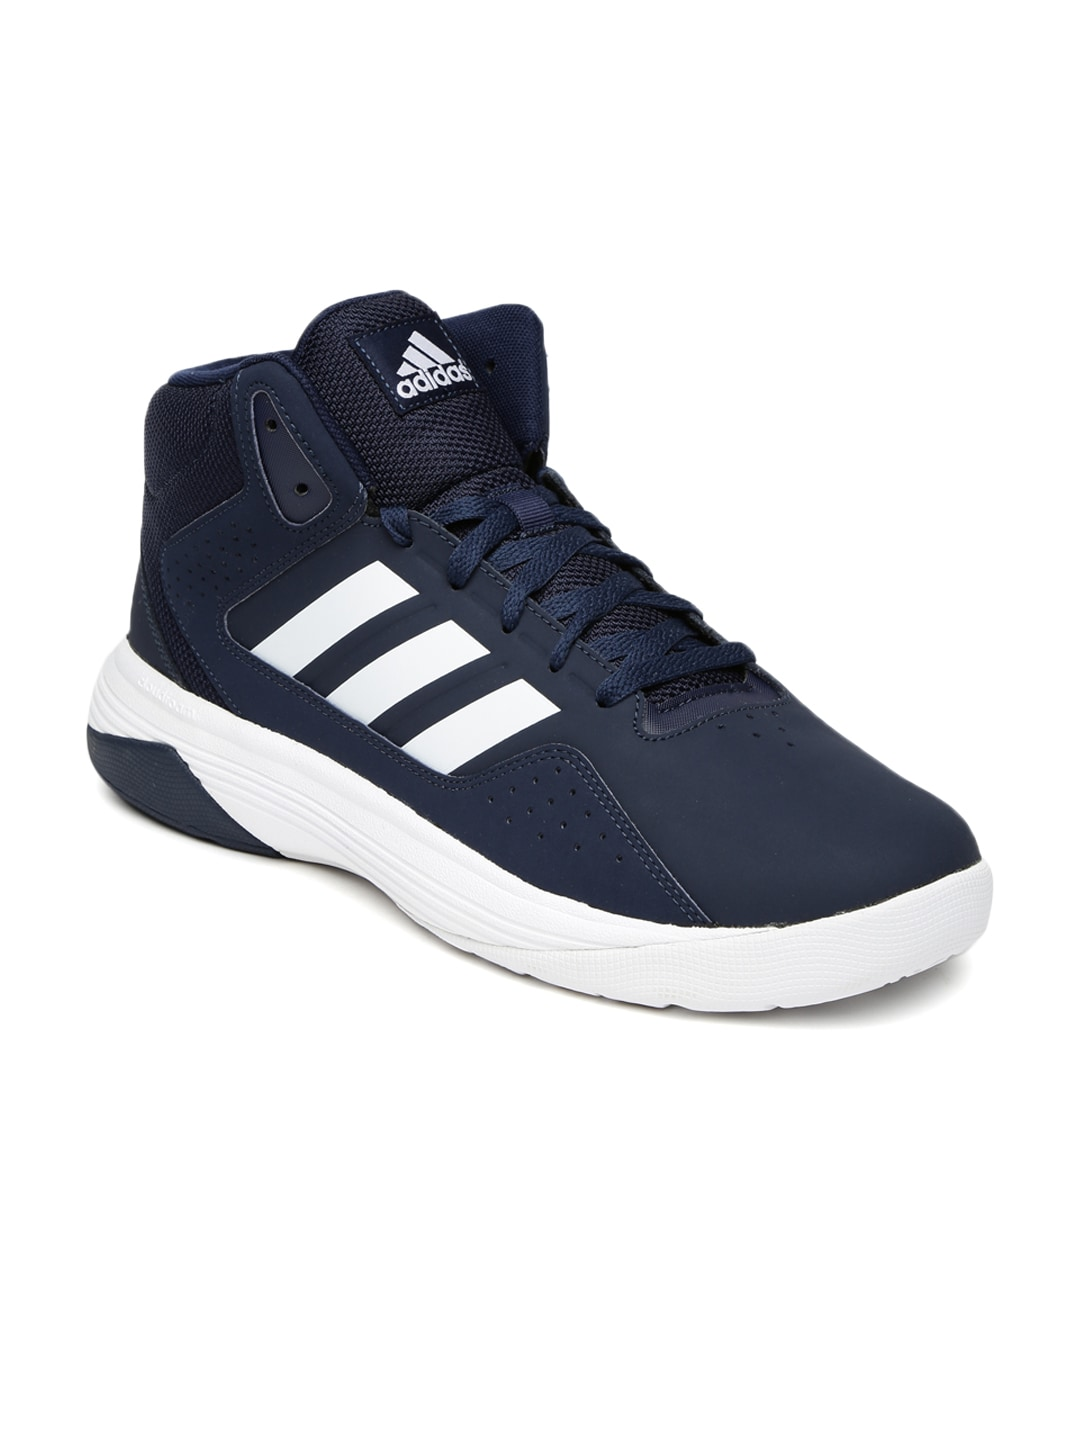 d28757af64c Adidas neo aw4649 Men Navy Cloudfoam Ilation Mid Top Sneakers- Price in  India